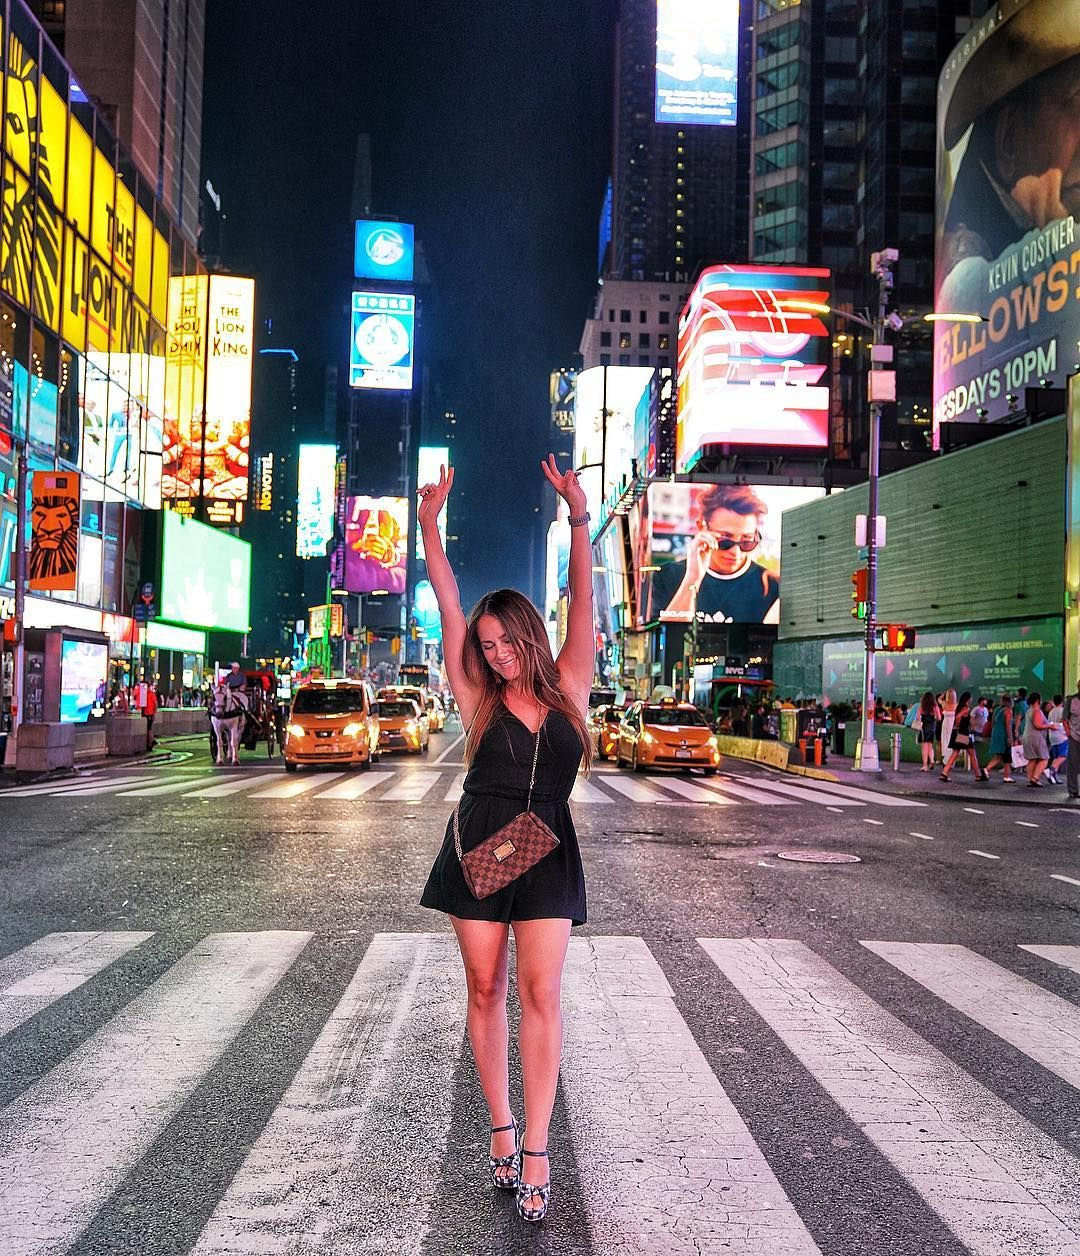 Times Square, New York City. Friday night vibes! New